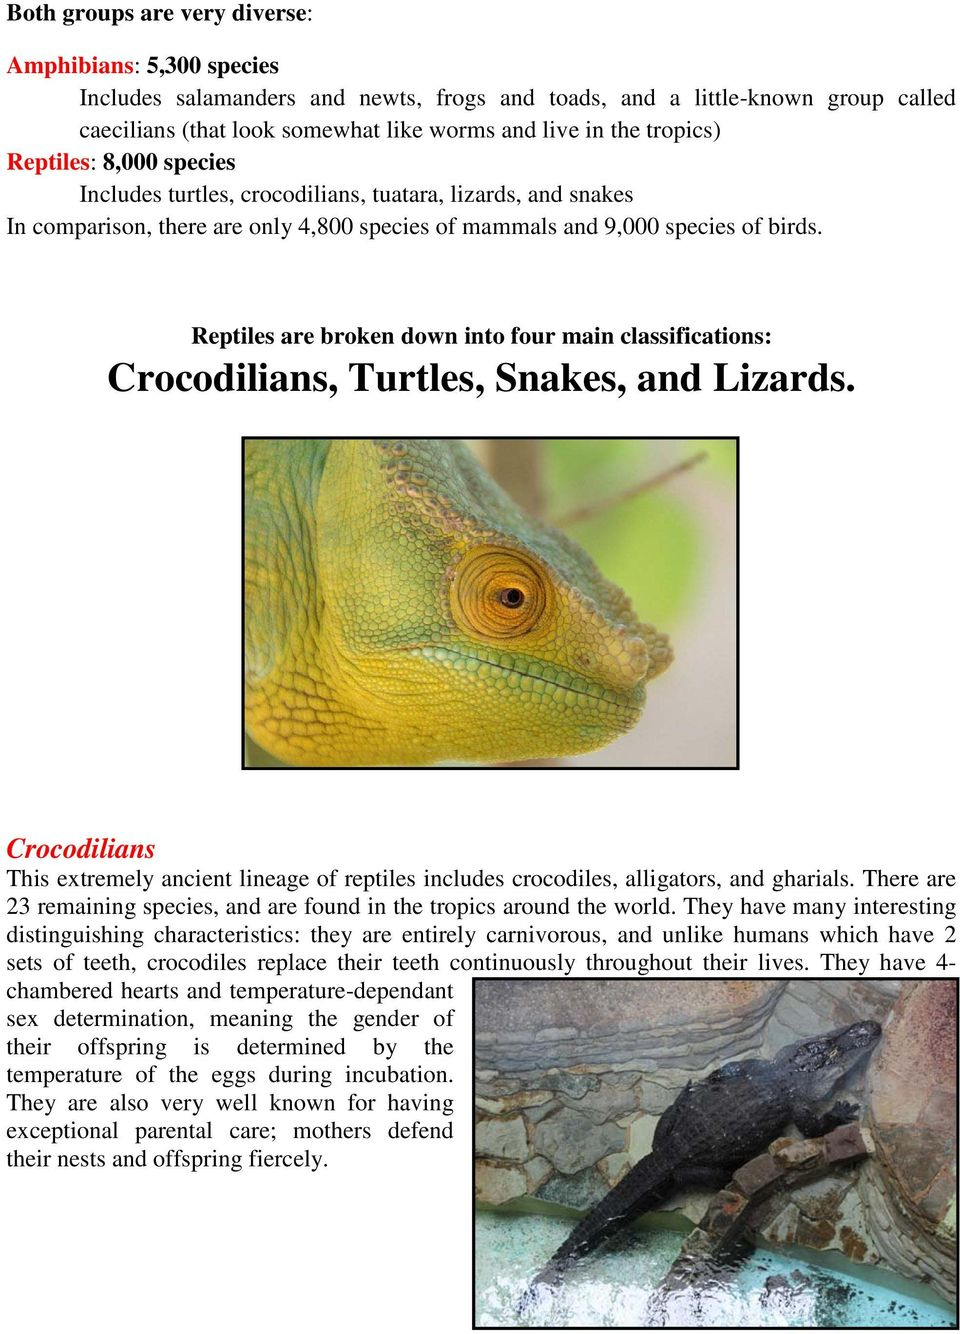 Reptiles are broken down into four main classifications: Crocodilians, Turtles, Snakes, and Lizards.